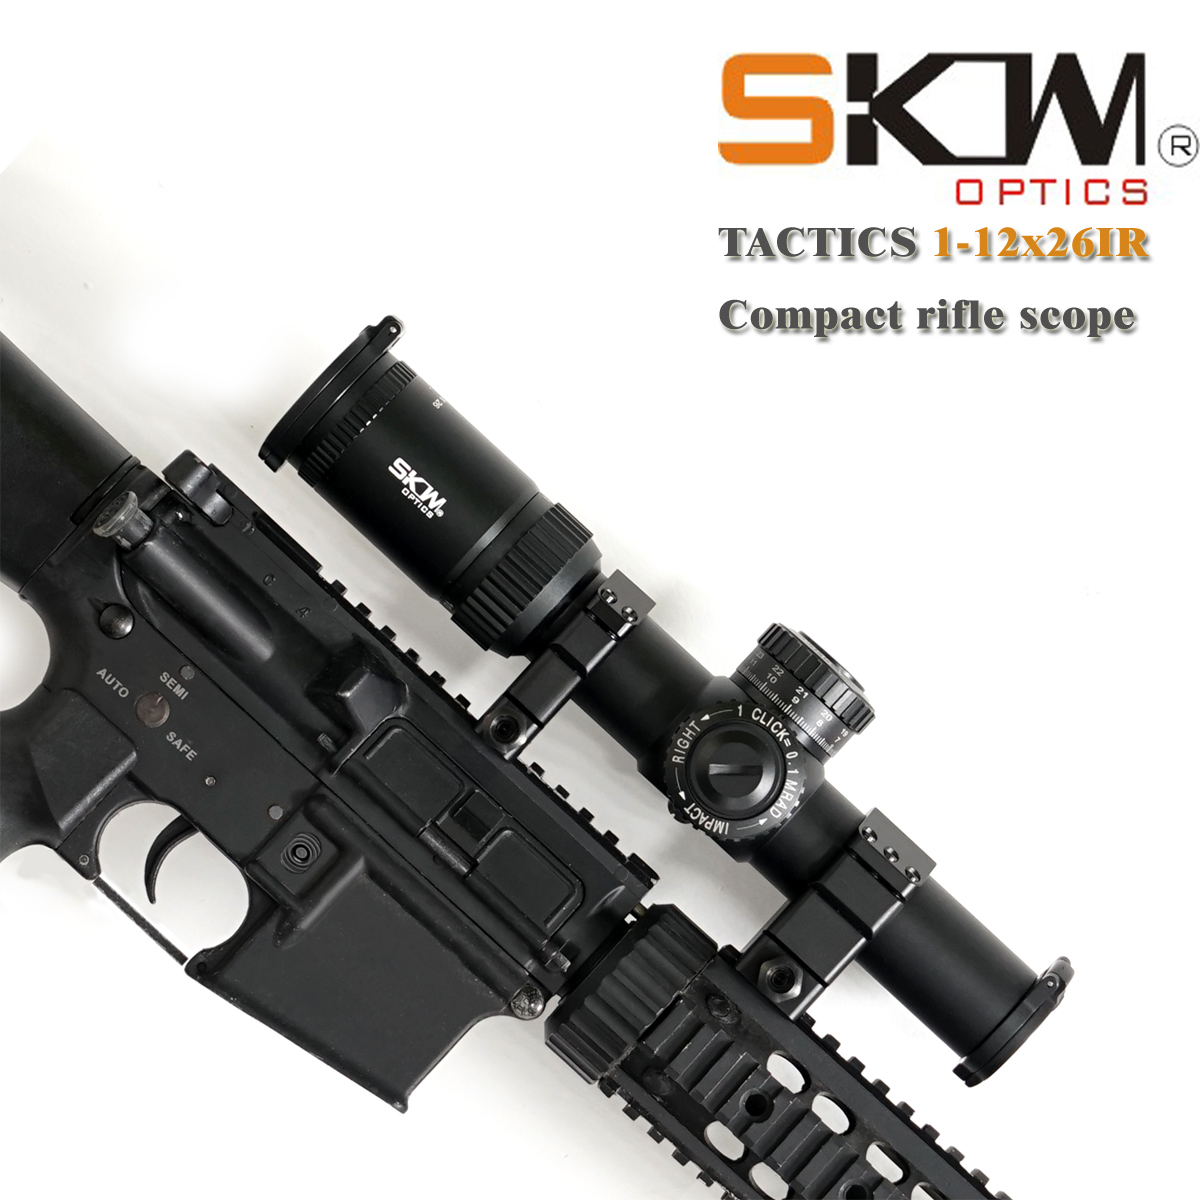 SKWoptics 1-12x26 Rifle Scopes With 34mm CNC Rings Military Tactical Reticle Shock Proof Riflescopes Hunting